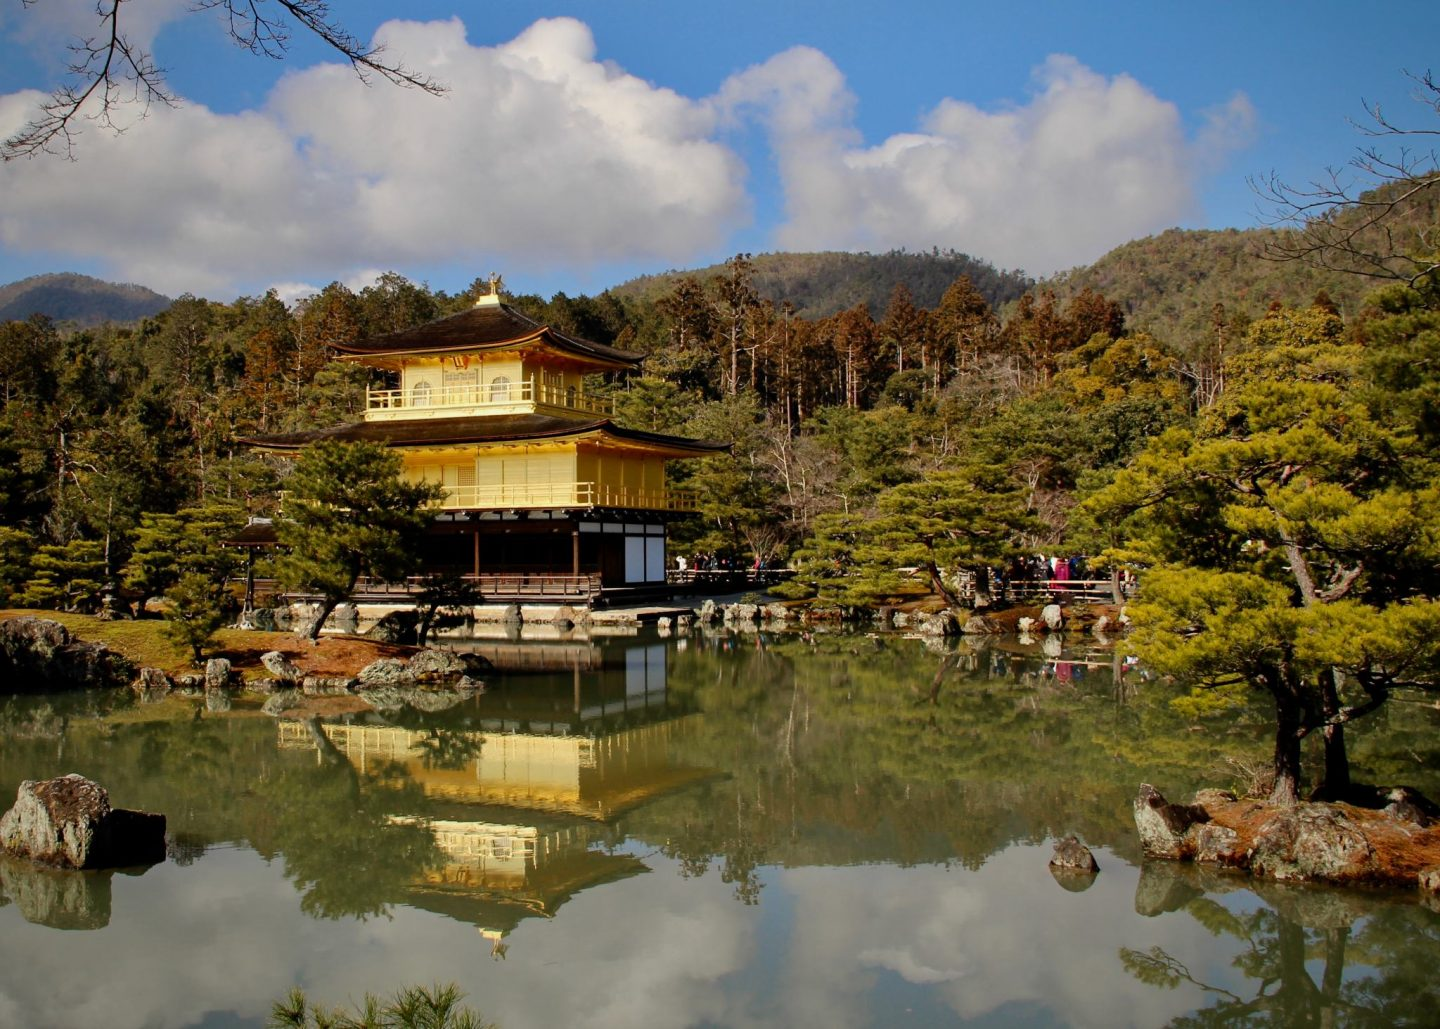 The Golden Temple Kyoto, Japan - The Spectacular Adventurer